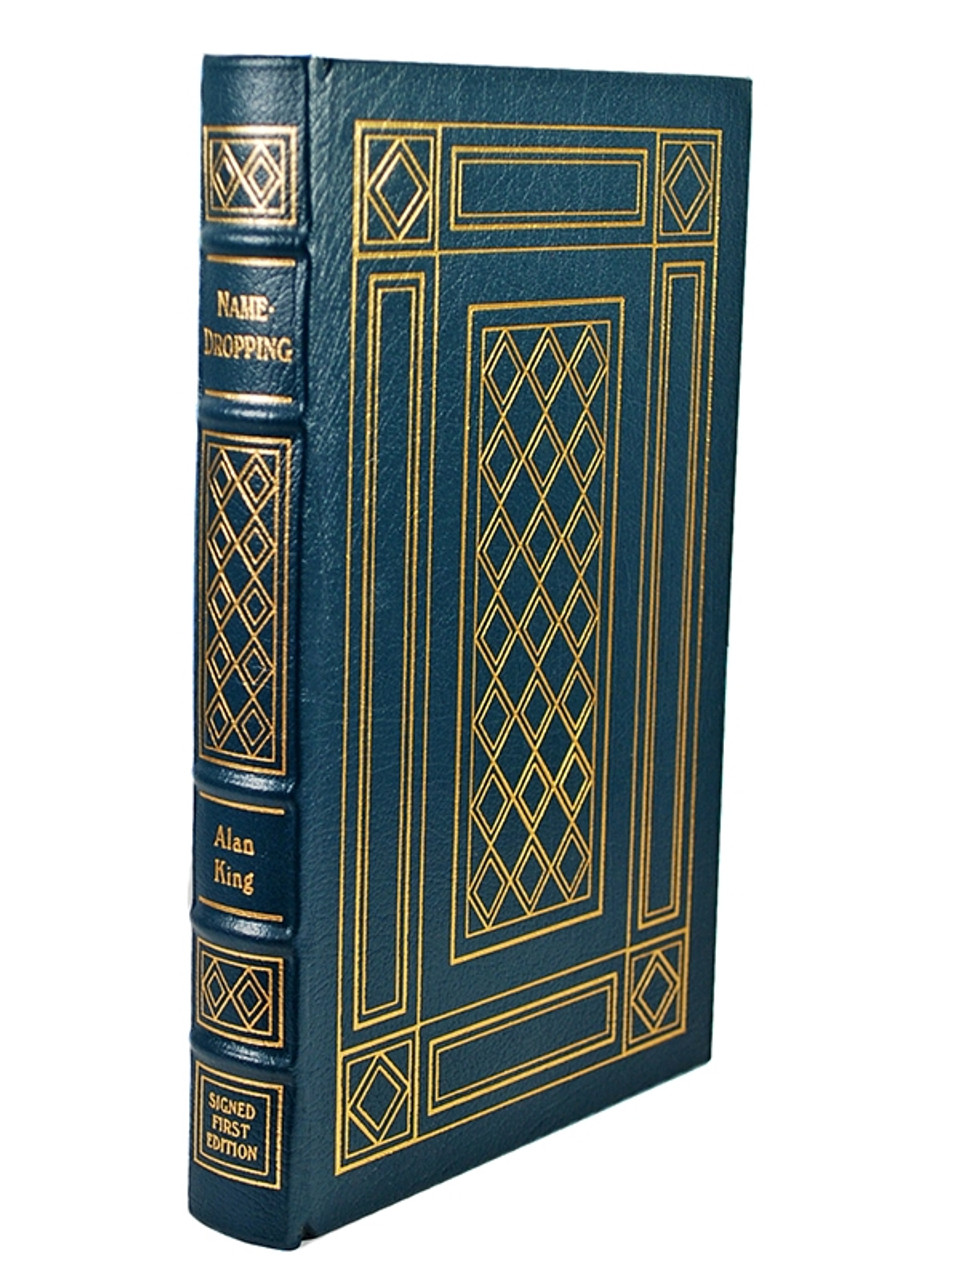 """Easton Press, Alan King """"Name-Dropping""""  Signed First Edition, Leather Bound Collector's Edition"""